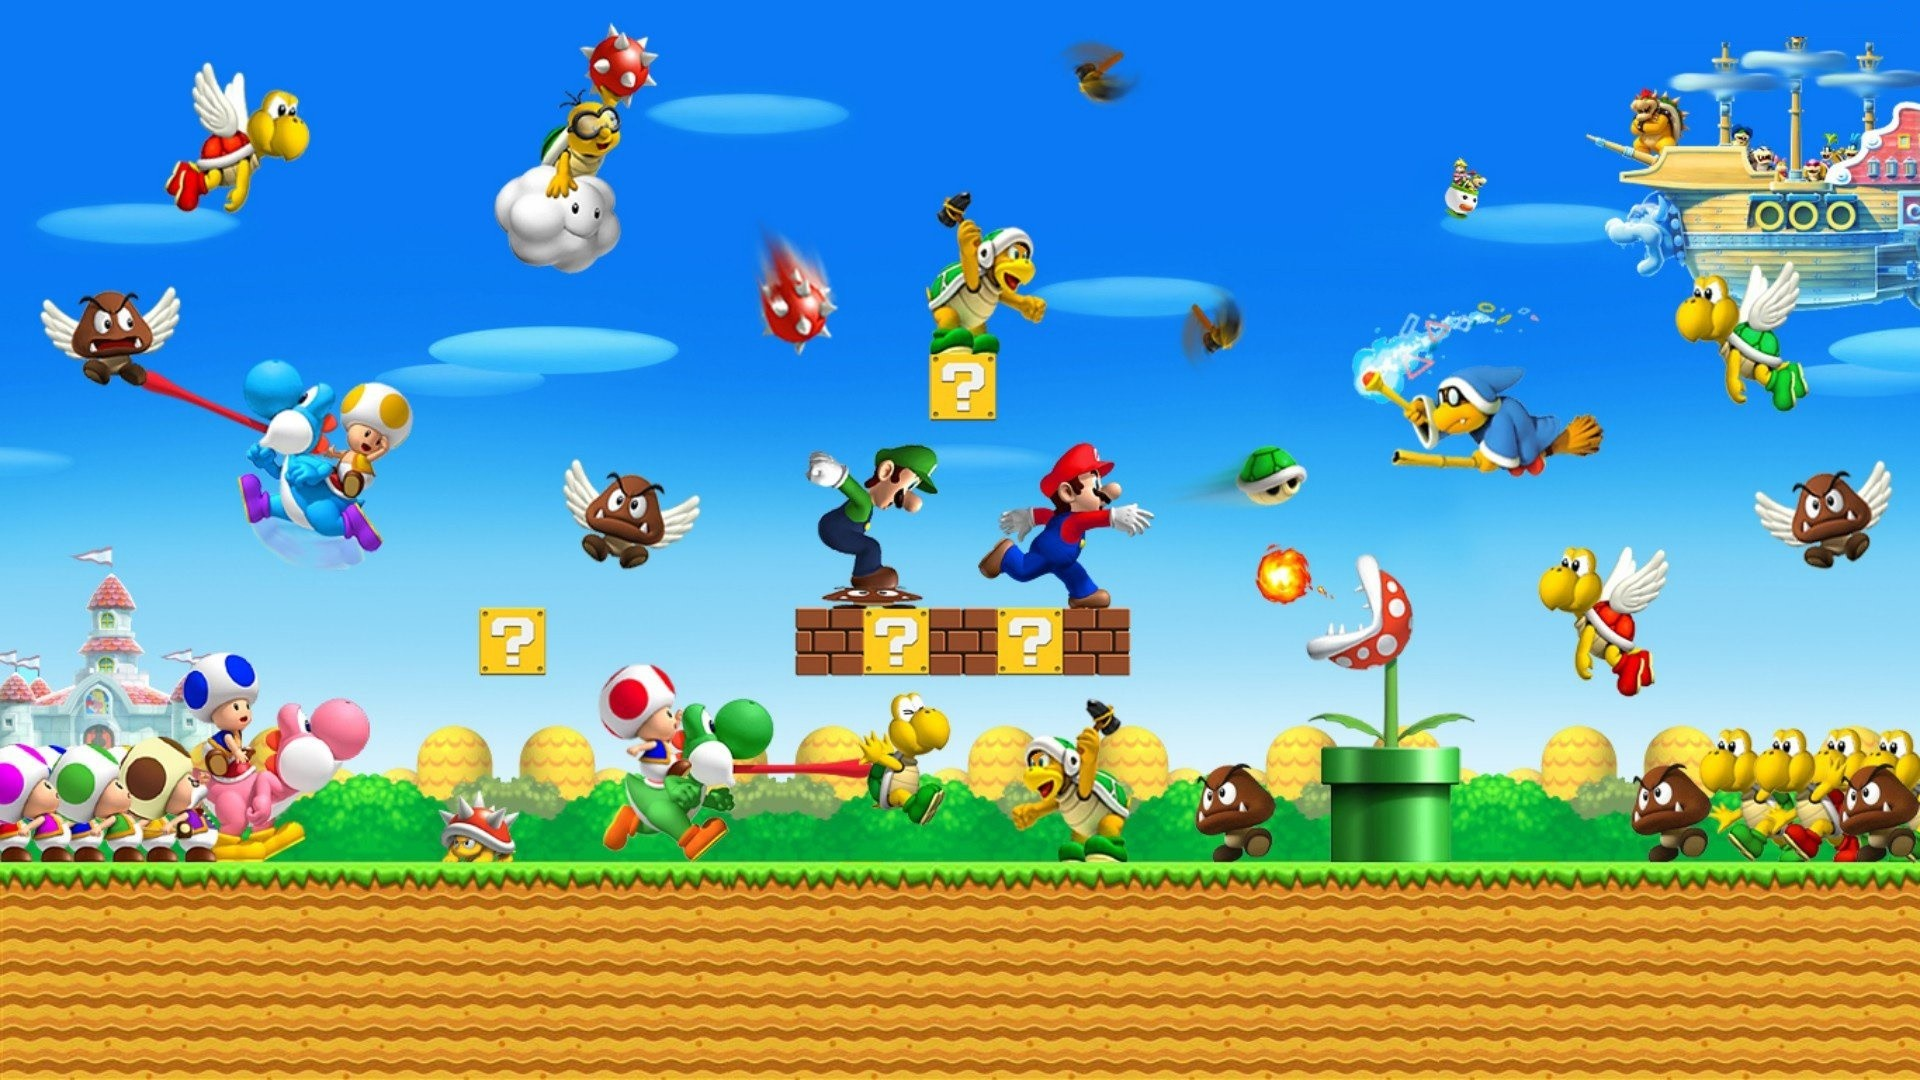 1920x1080 funny game super mario backgrounds full hd desktop images windows 10  backgrounds colourful computer wallpapers cool colours artwork 1920×1080  Wallpaper HD